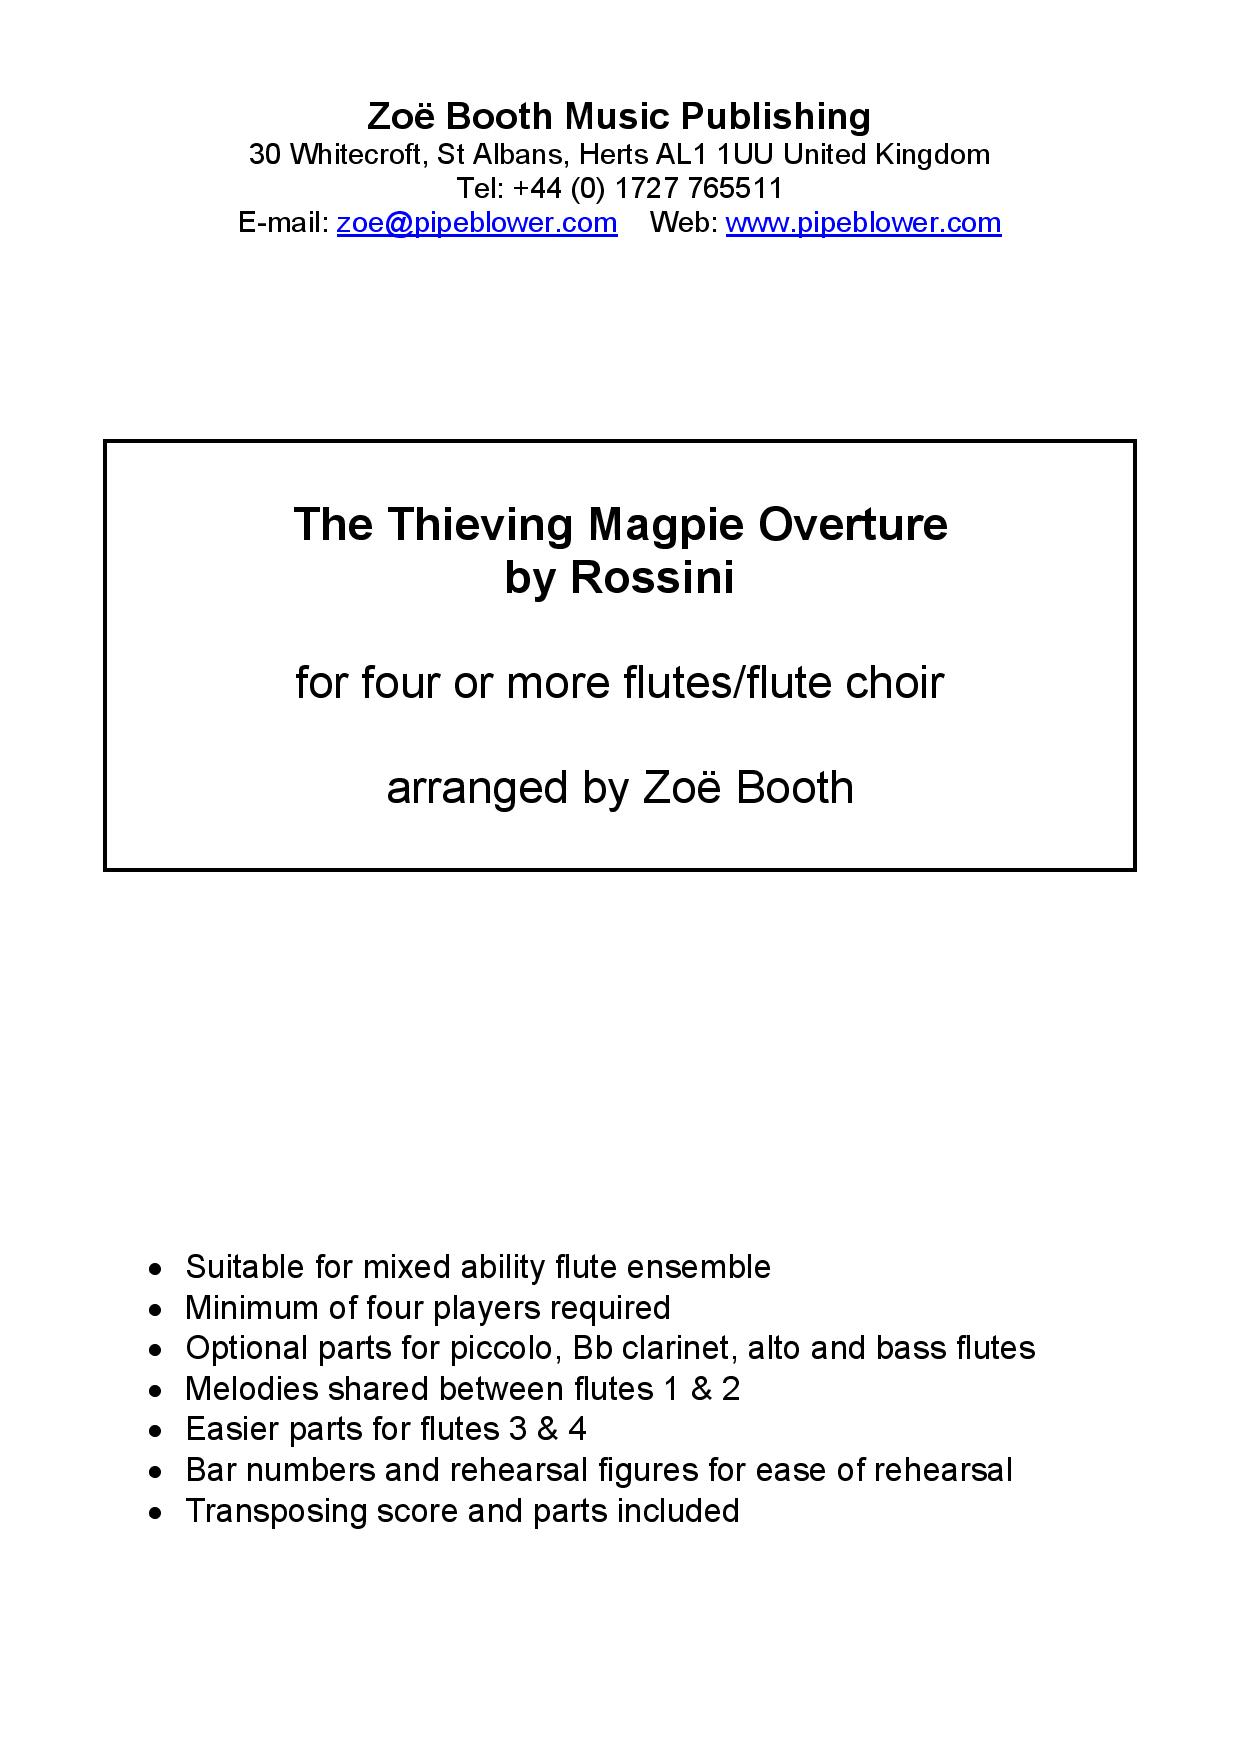 The Thieving Magpie Overture by Rossini,  arranged by Zoë Booth for four or more flutes/flute choir